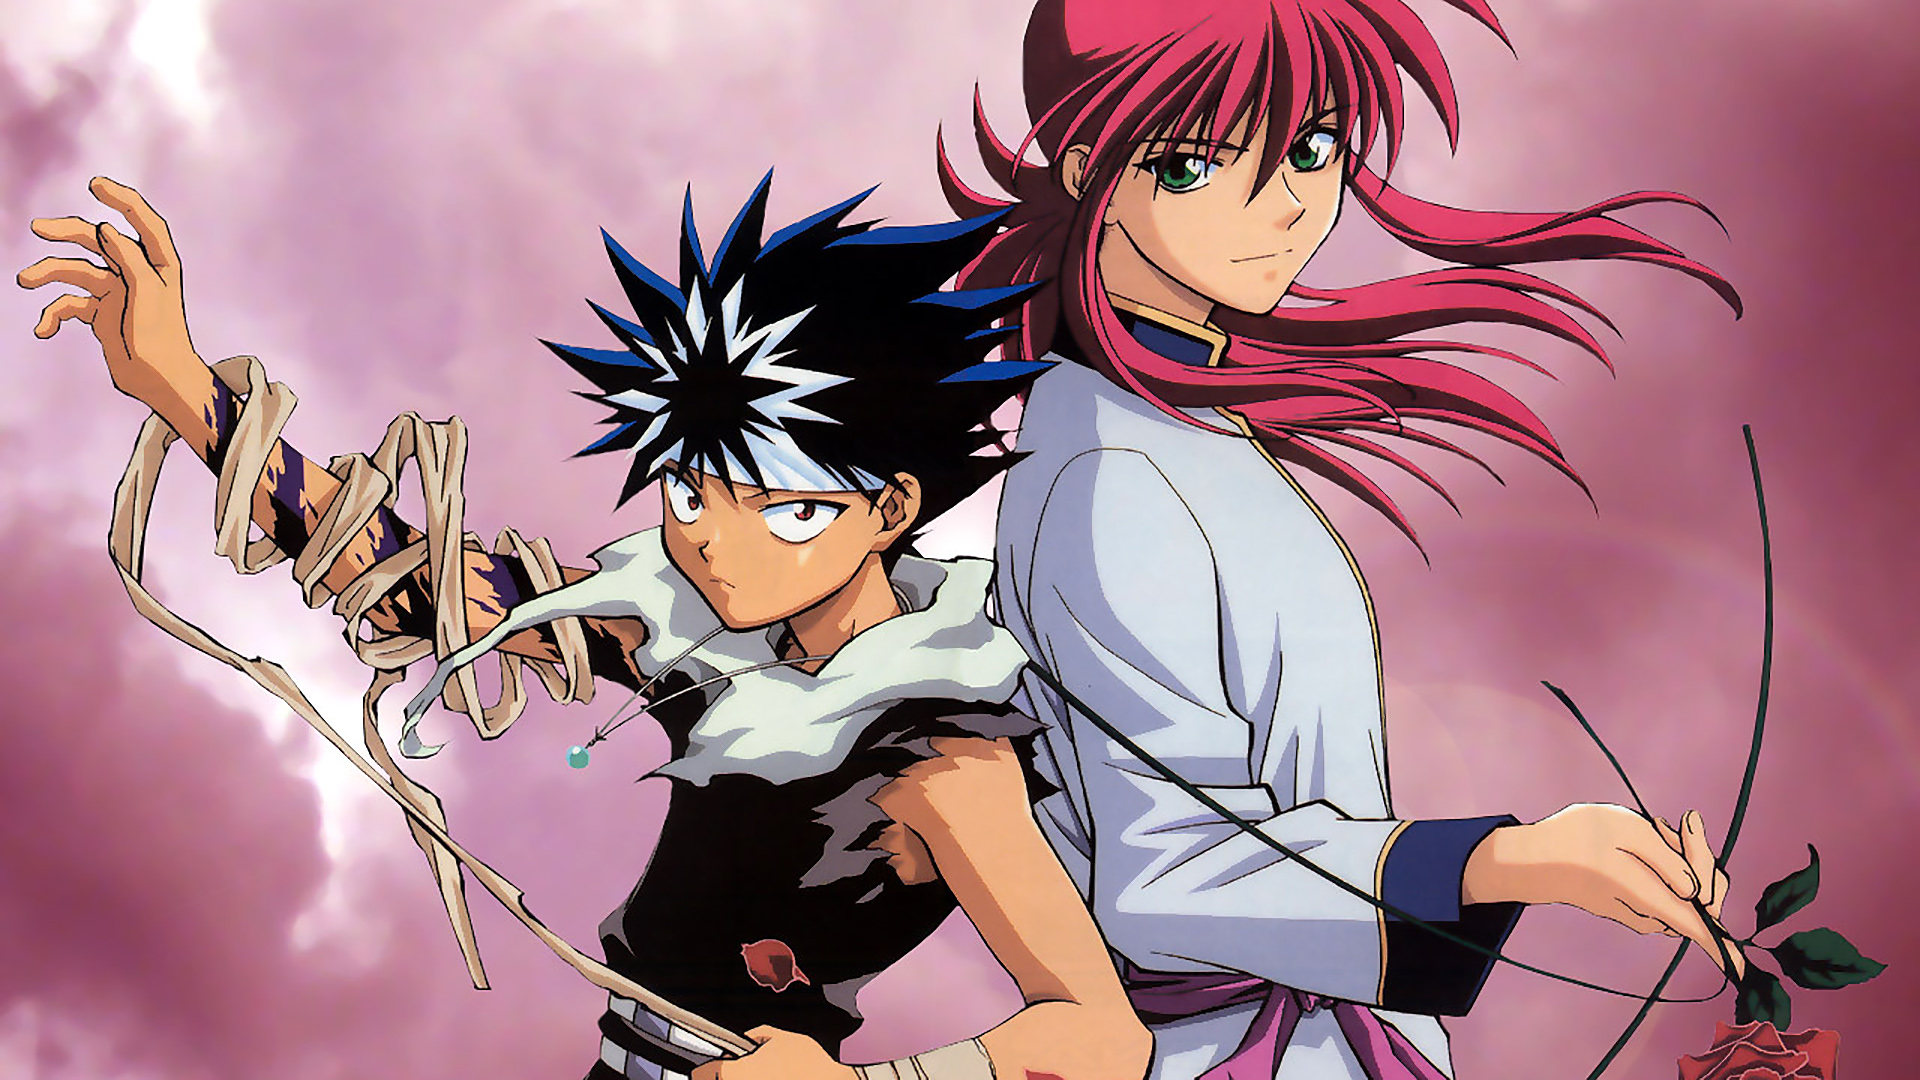 Hiei Wallpapers Posted By Samantha Tremblay